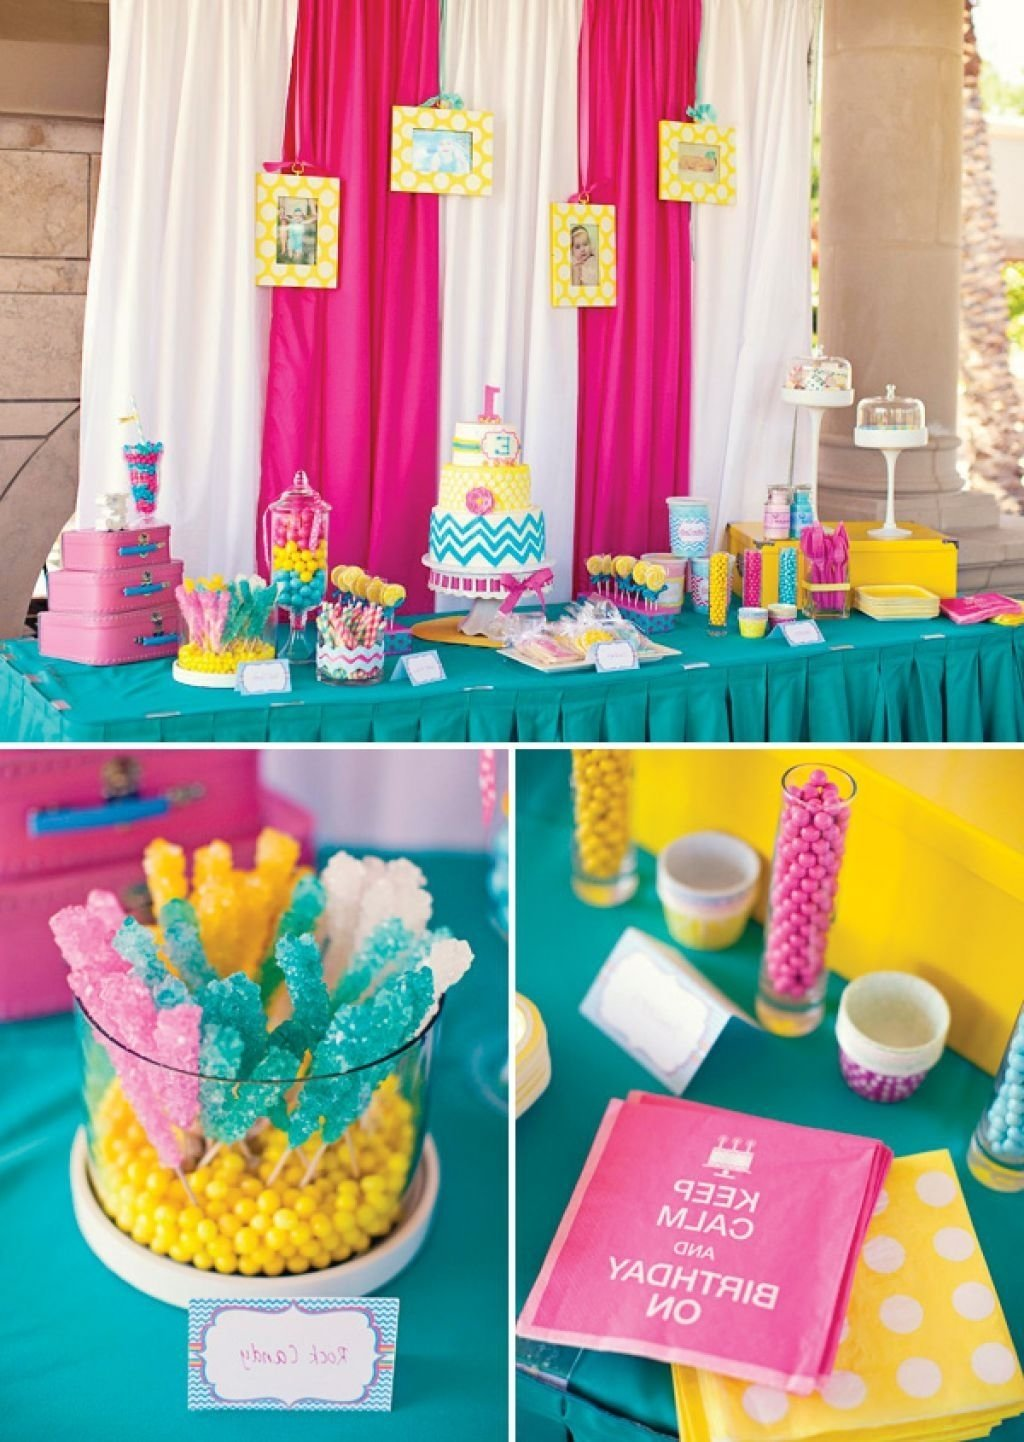 10 Gorgeous Birthday Ideas For 8 Year Old Girl outdoor party decorations google search madeline pinterest 21 2021